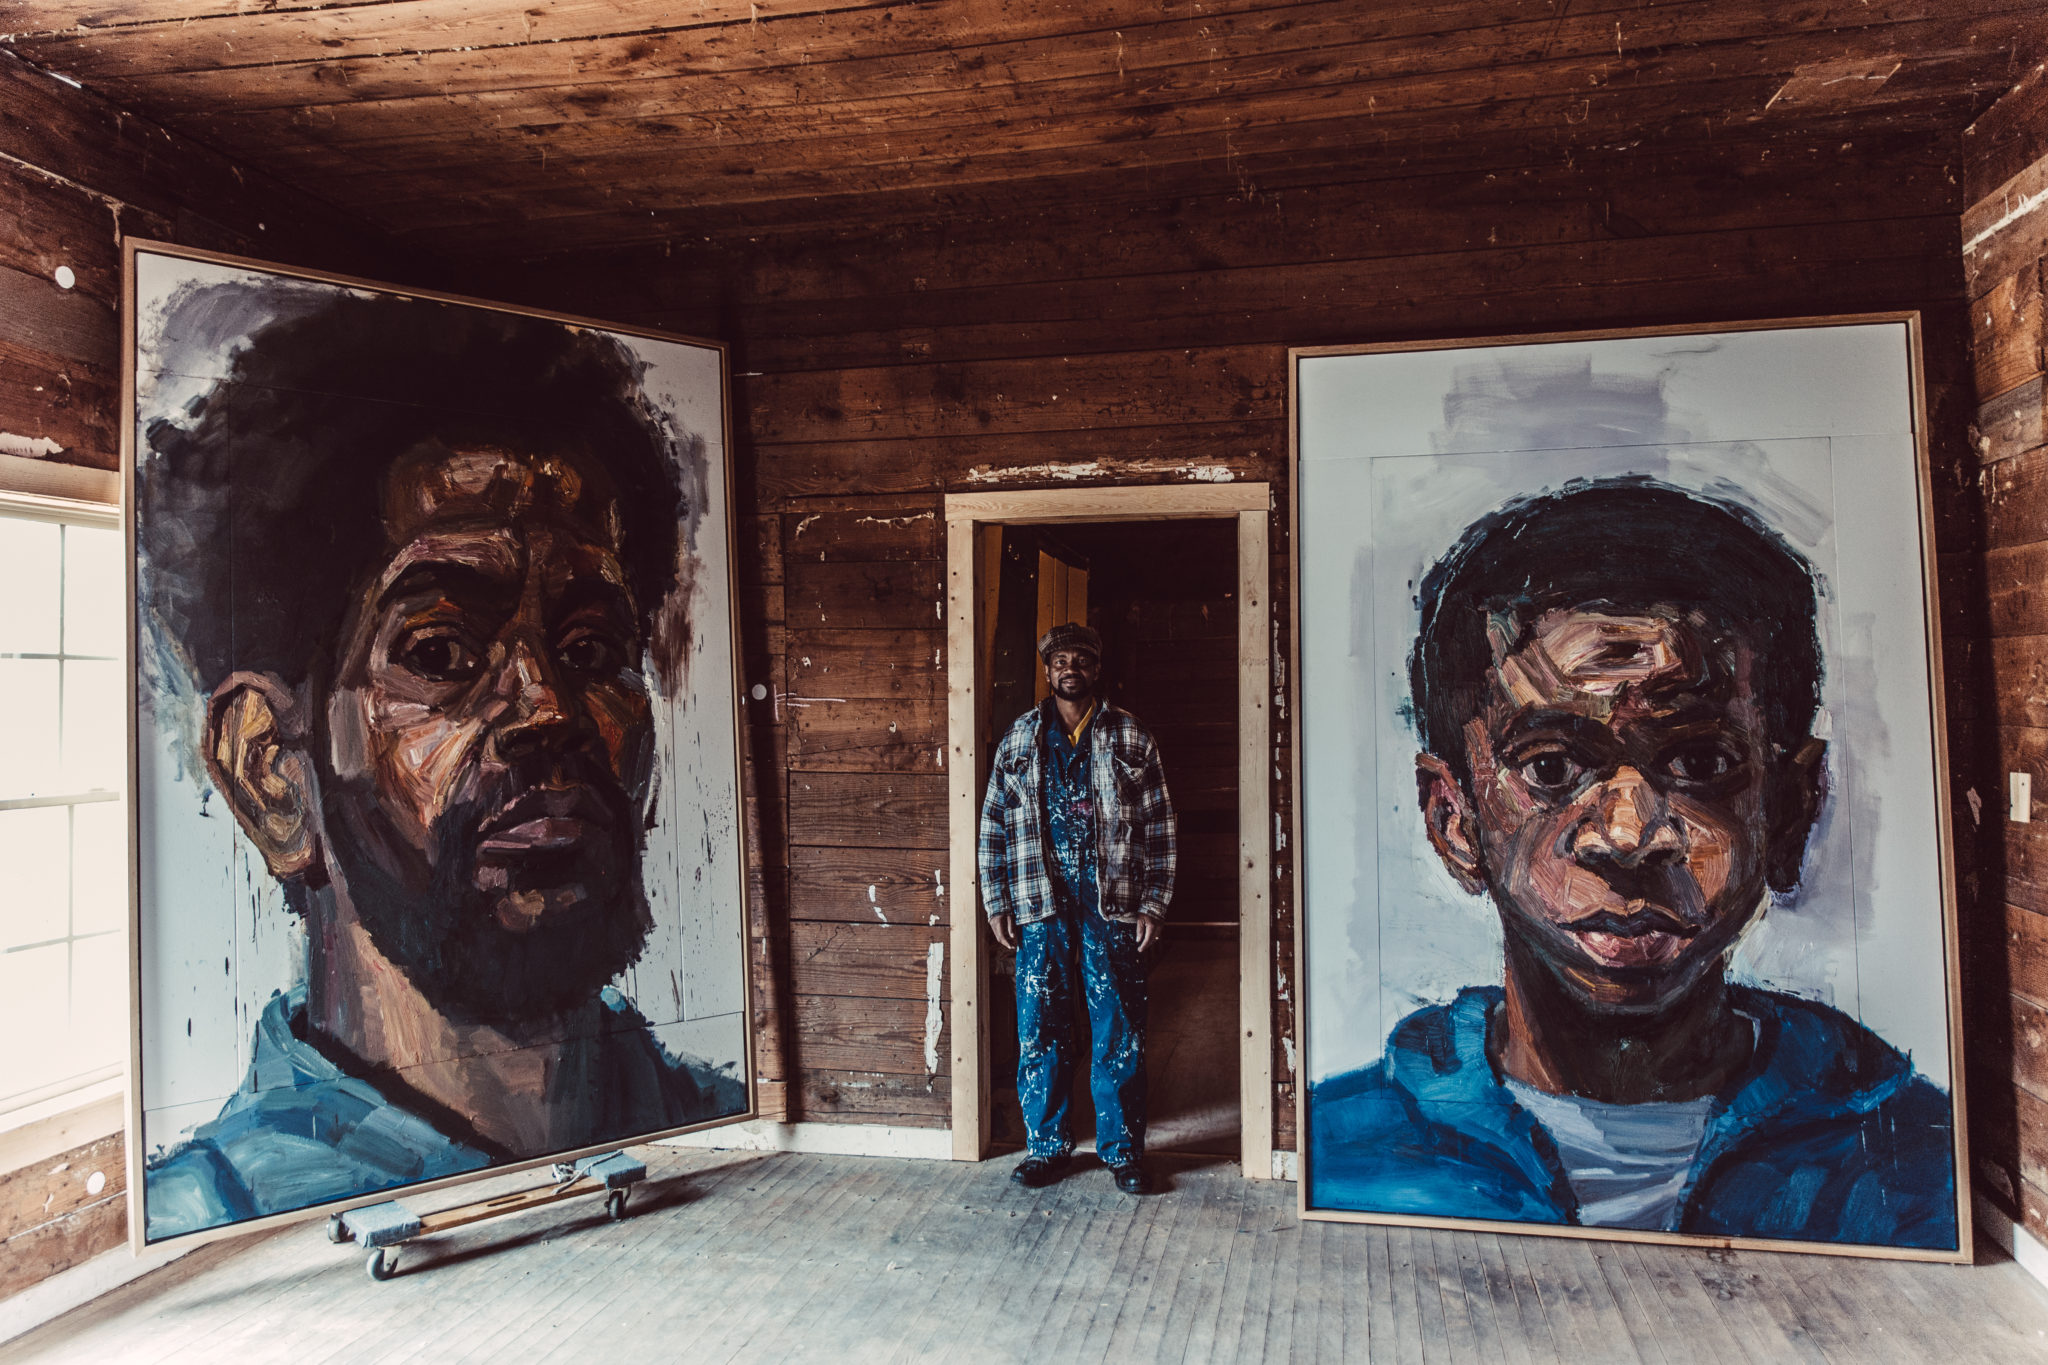 Sedrick Huckaby in Big Momma's house (Photo: Rambo). Pictured with: Daddy and Rising Sun, 2013. Oil on canvas. Each 72 x 48 inches.